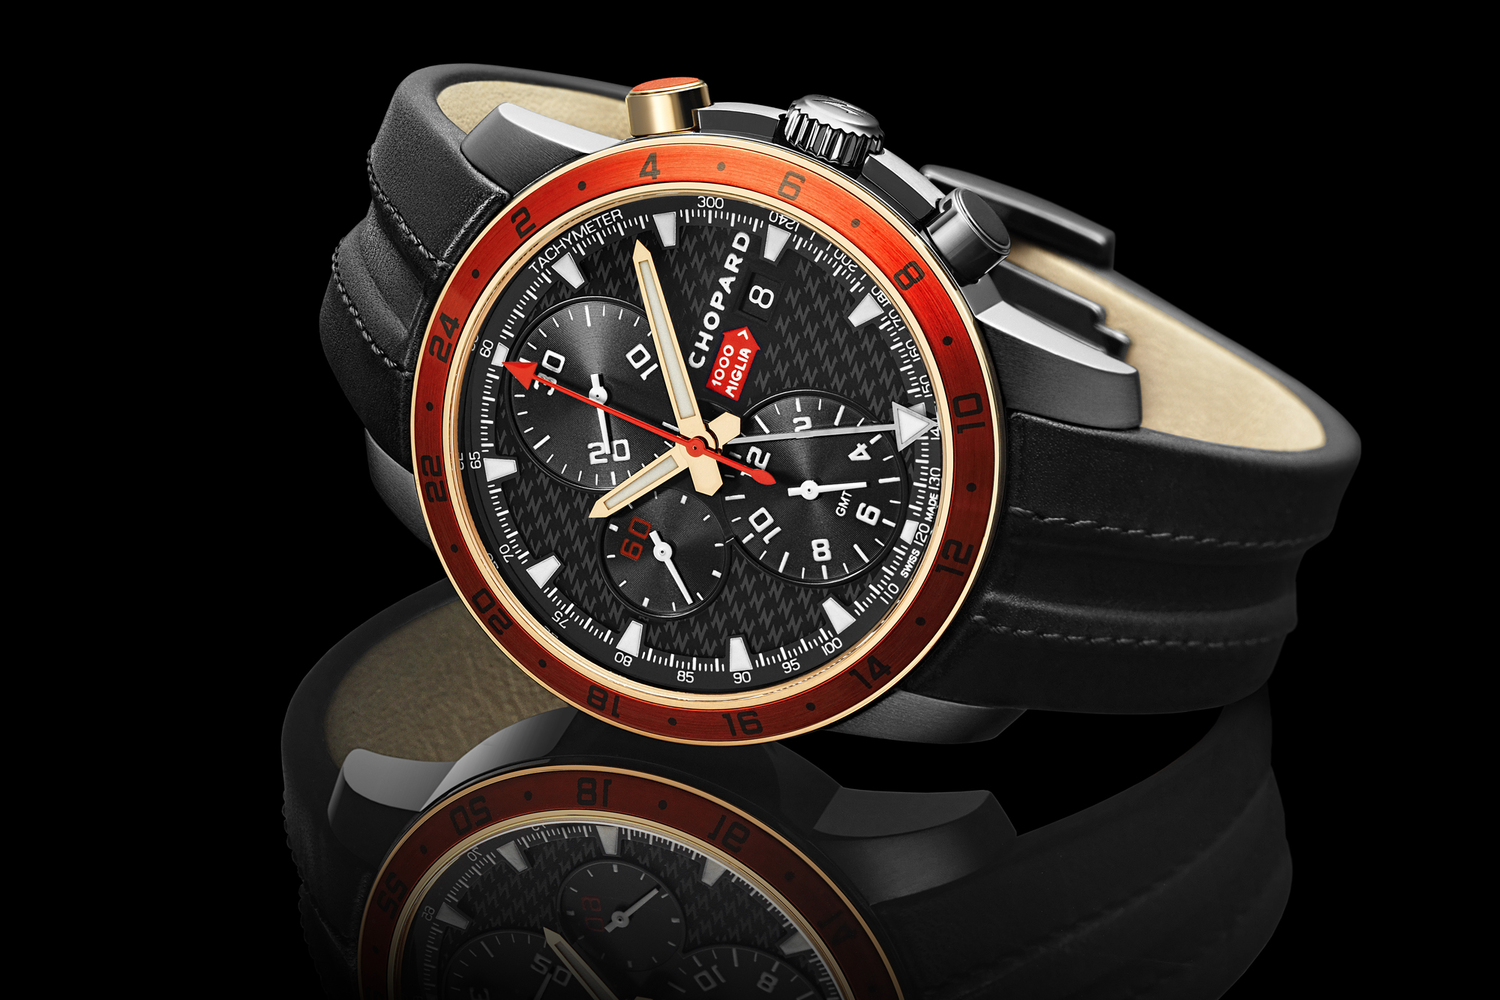 chopard mille miglia zagato chronograph review swiss classic watches. Black Bedroom Furniture Sets. Home Design Ideas